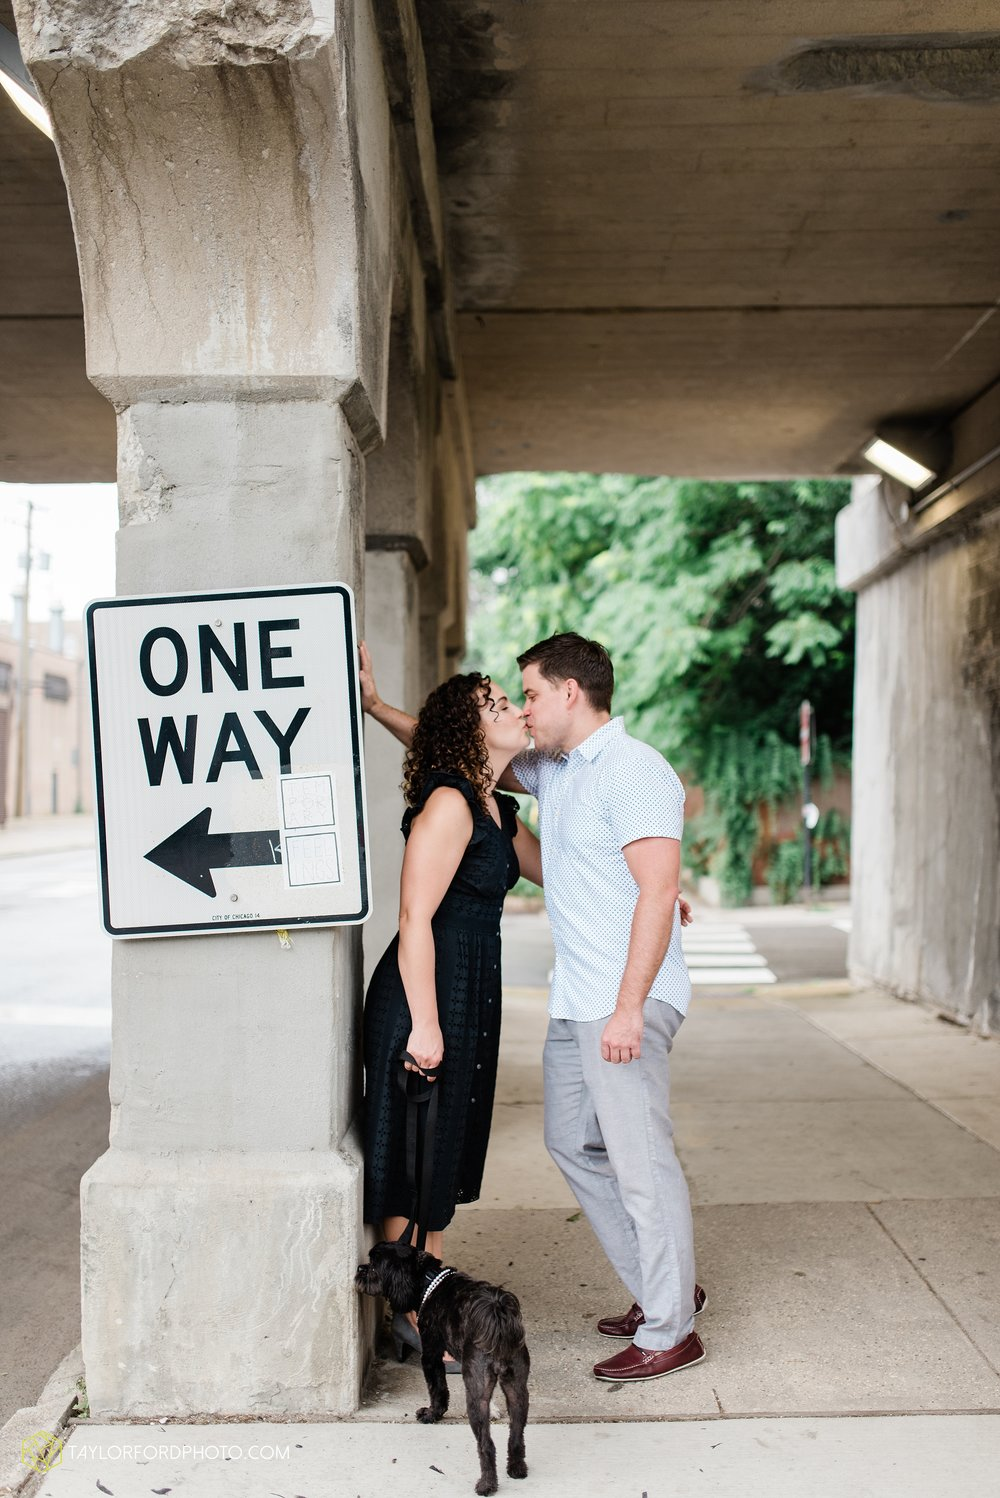 chicago-illinois-ipsento-606-high-line-wicker-park-bucktown-prosecutor-engagement-wedding-photographer-Taylor-Ford-Photography_8703.jpg